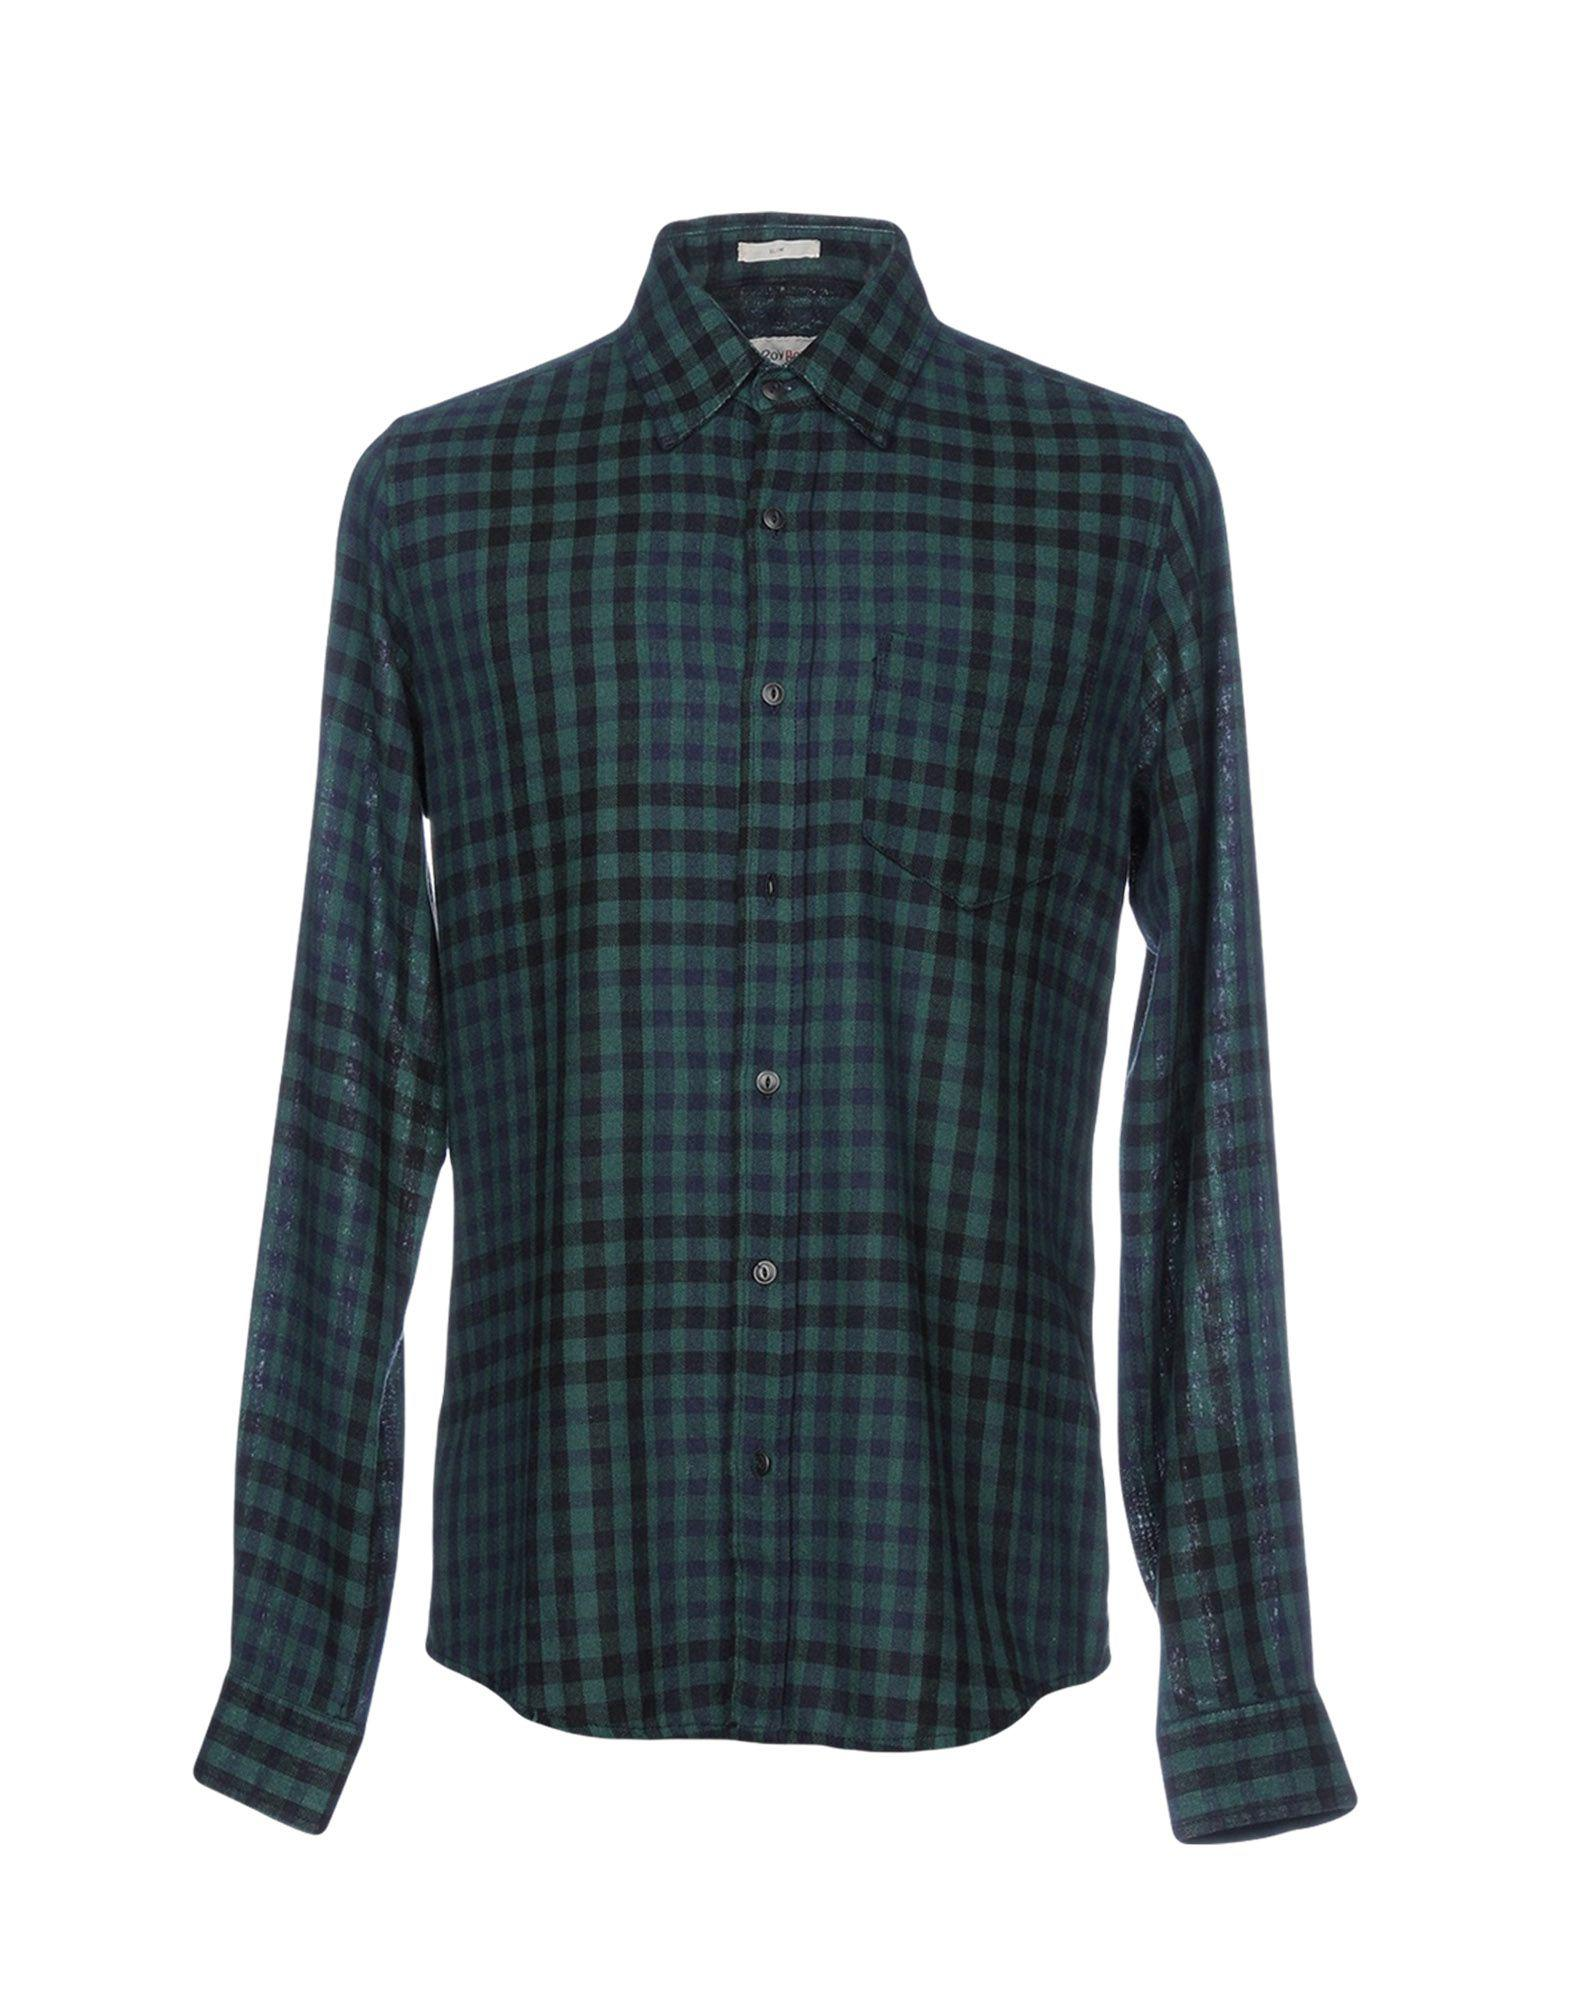 Emerald Green Dress Shirt For Mens Dress Foto And Picture